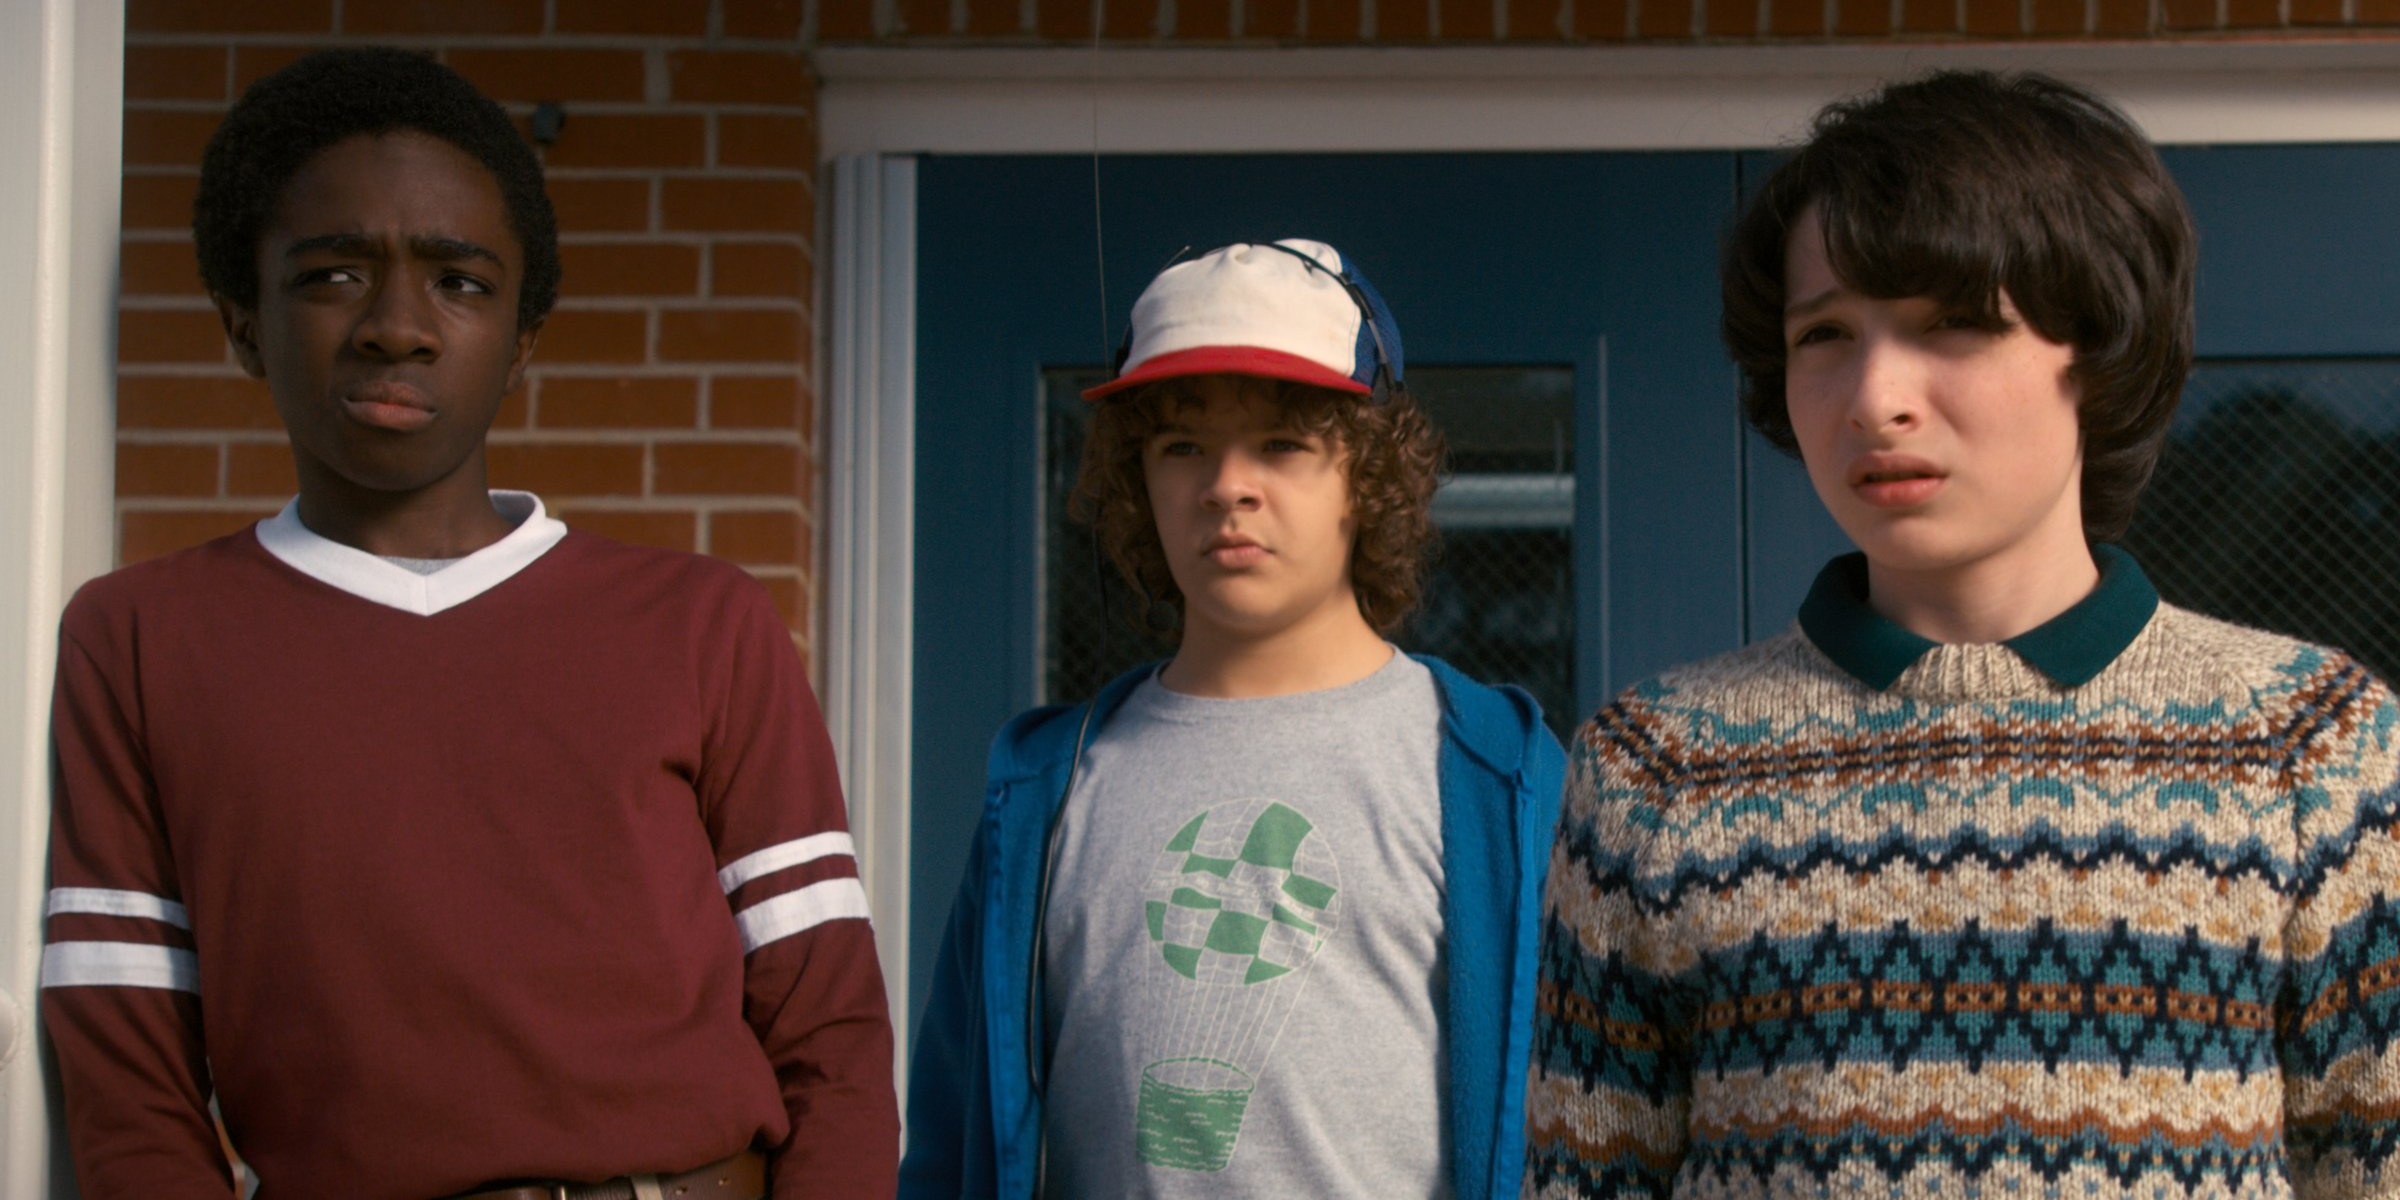 Discover your Stranger Things counterpart with this immersive Spotify playlist generator